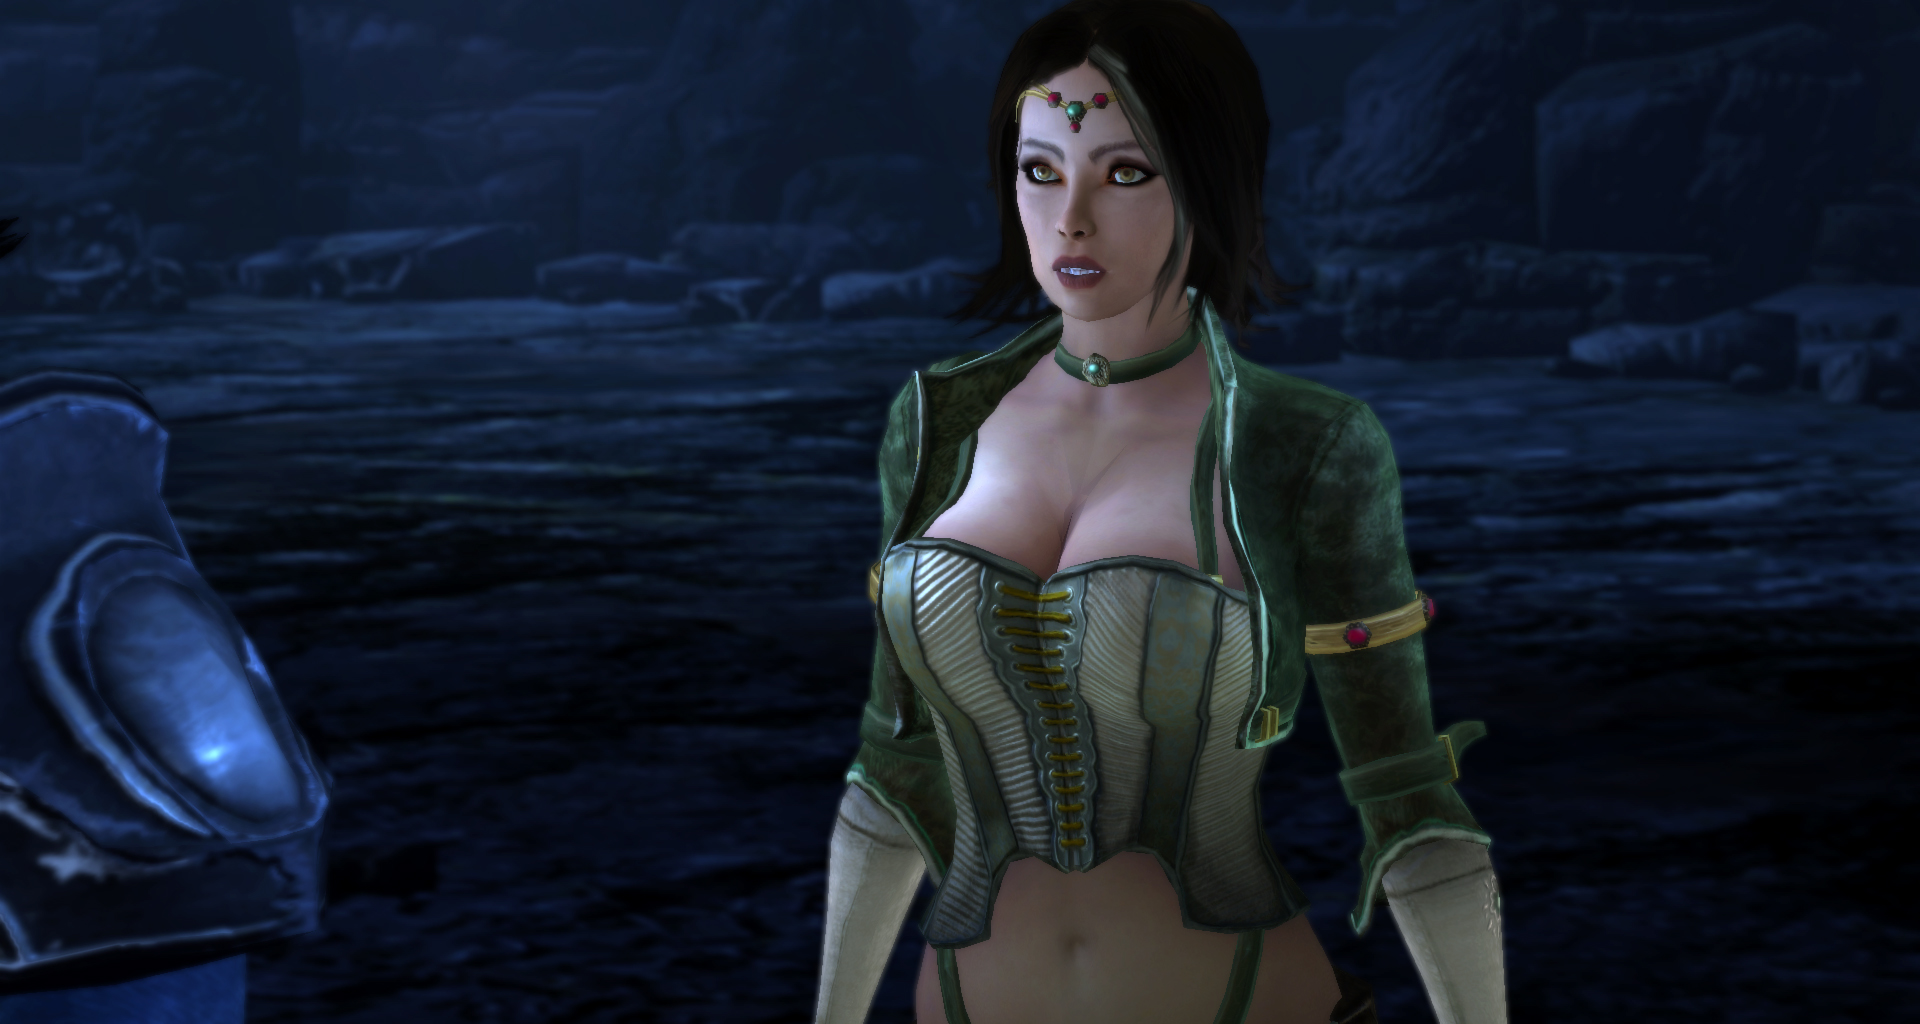 Dungeon siege 3 porn naked hentai photos